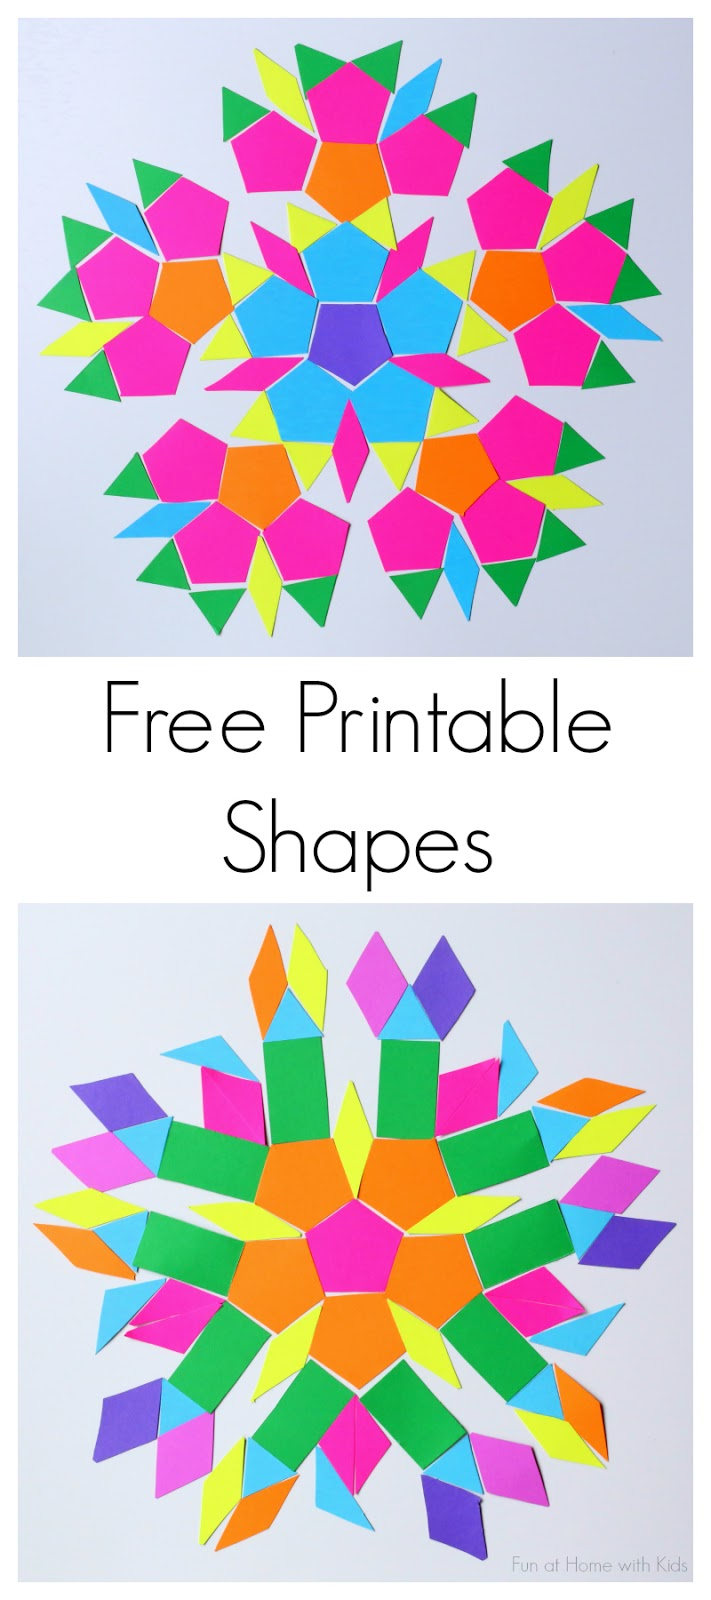 graphic regarding Free Printable Shapes known as No cost Printable Styles for Push Package